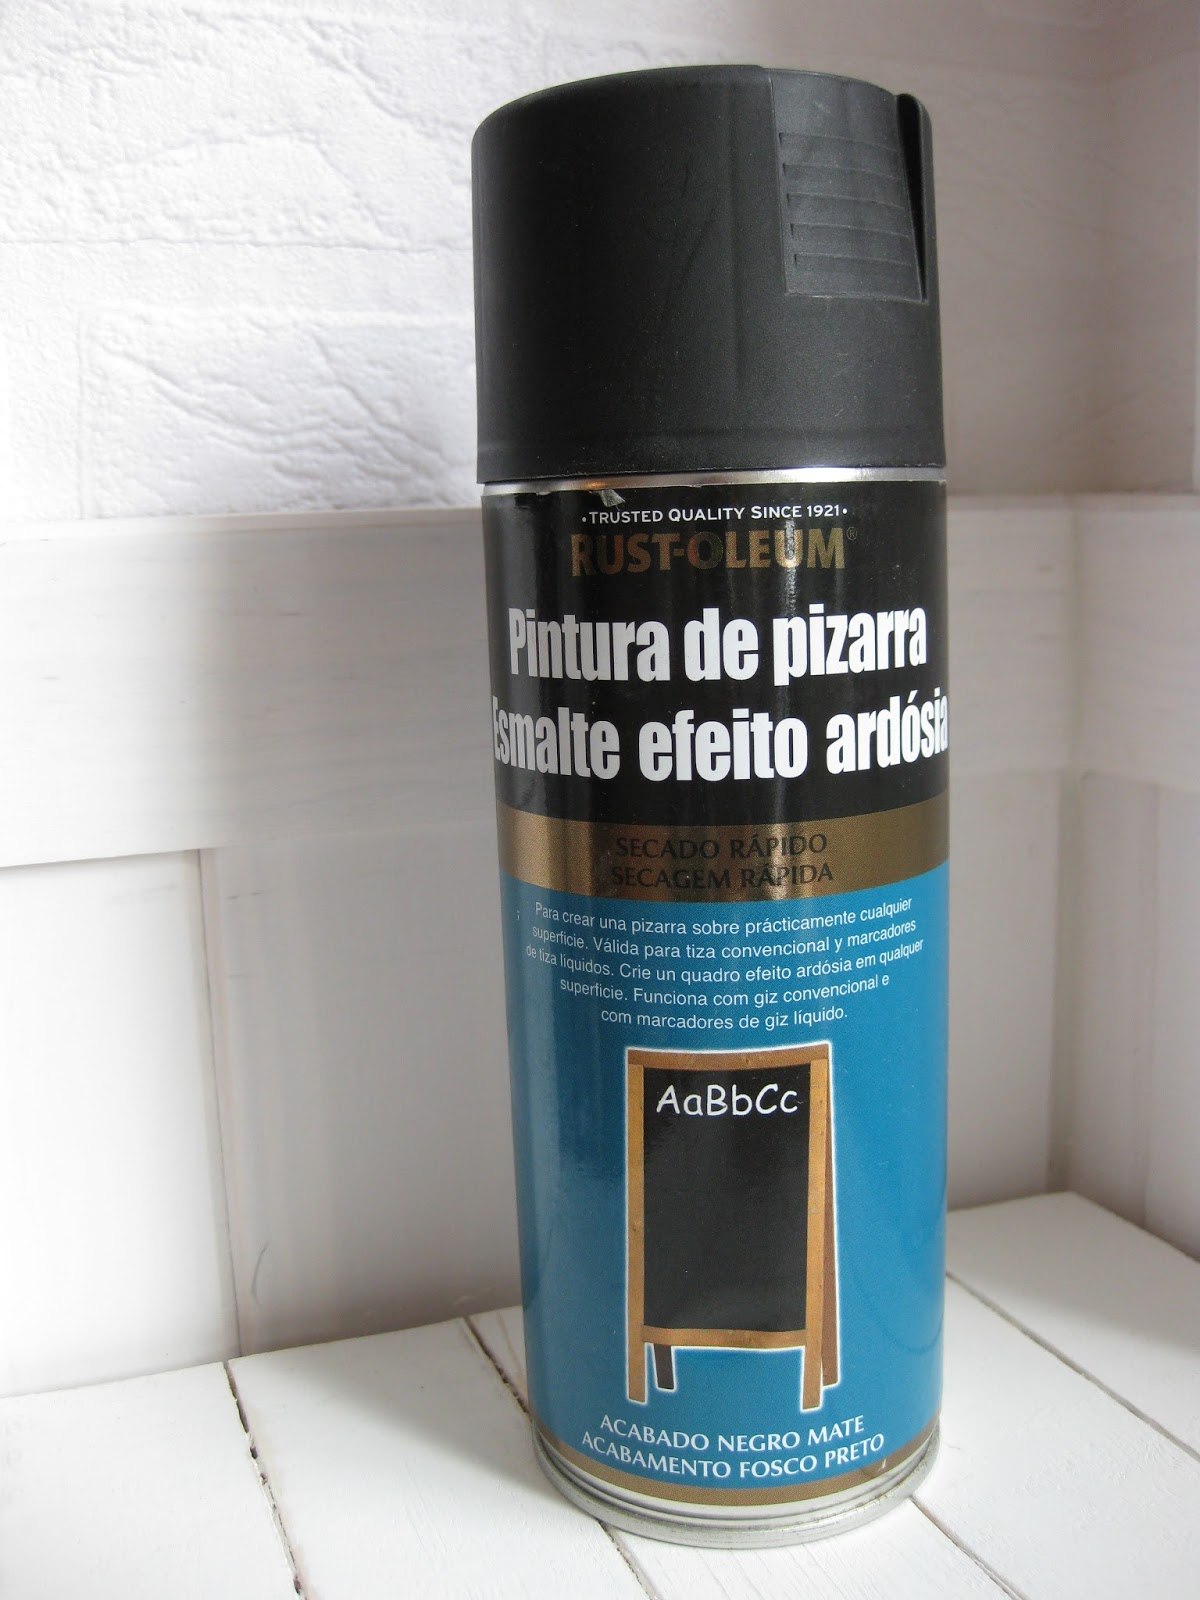 Pintura De Pizarra Para Pared Diy Crear Una Pared Pizarra Con Pintura En Spray Handbox